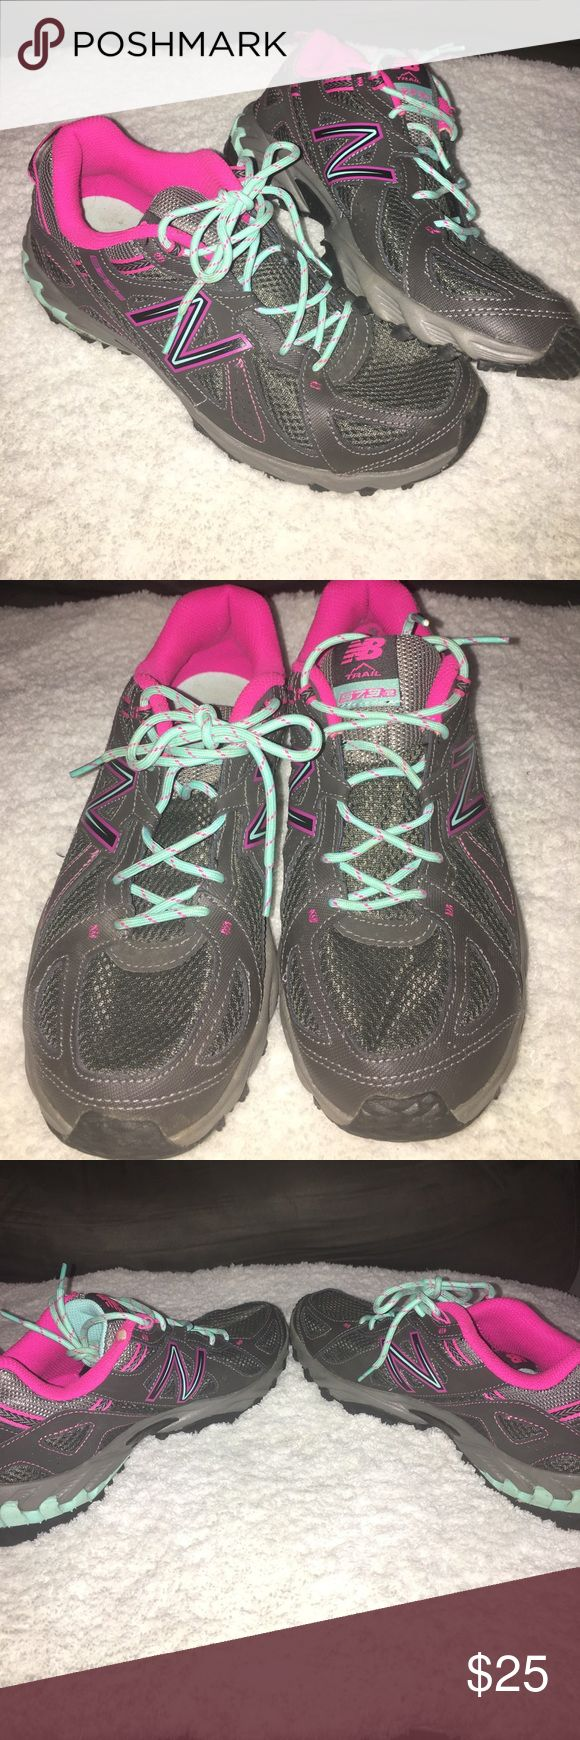 New balance trail sz 10 shoes New balance trail sz 10 shoes has some wear and some dirt but has a minor rear shown on rim of shoe New Balance Shoes Athletic Shoes